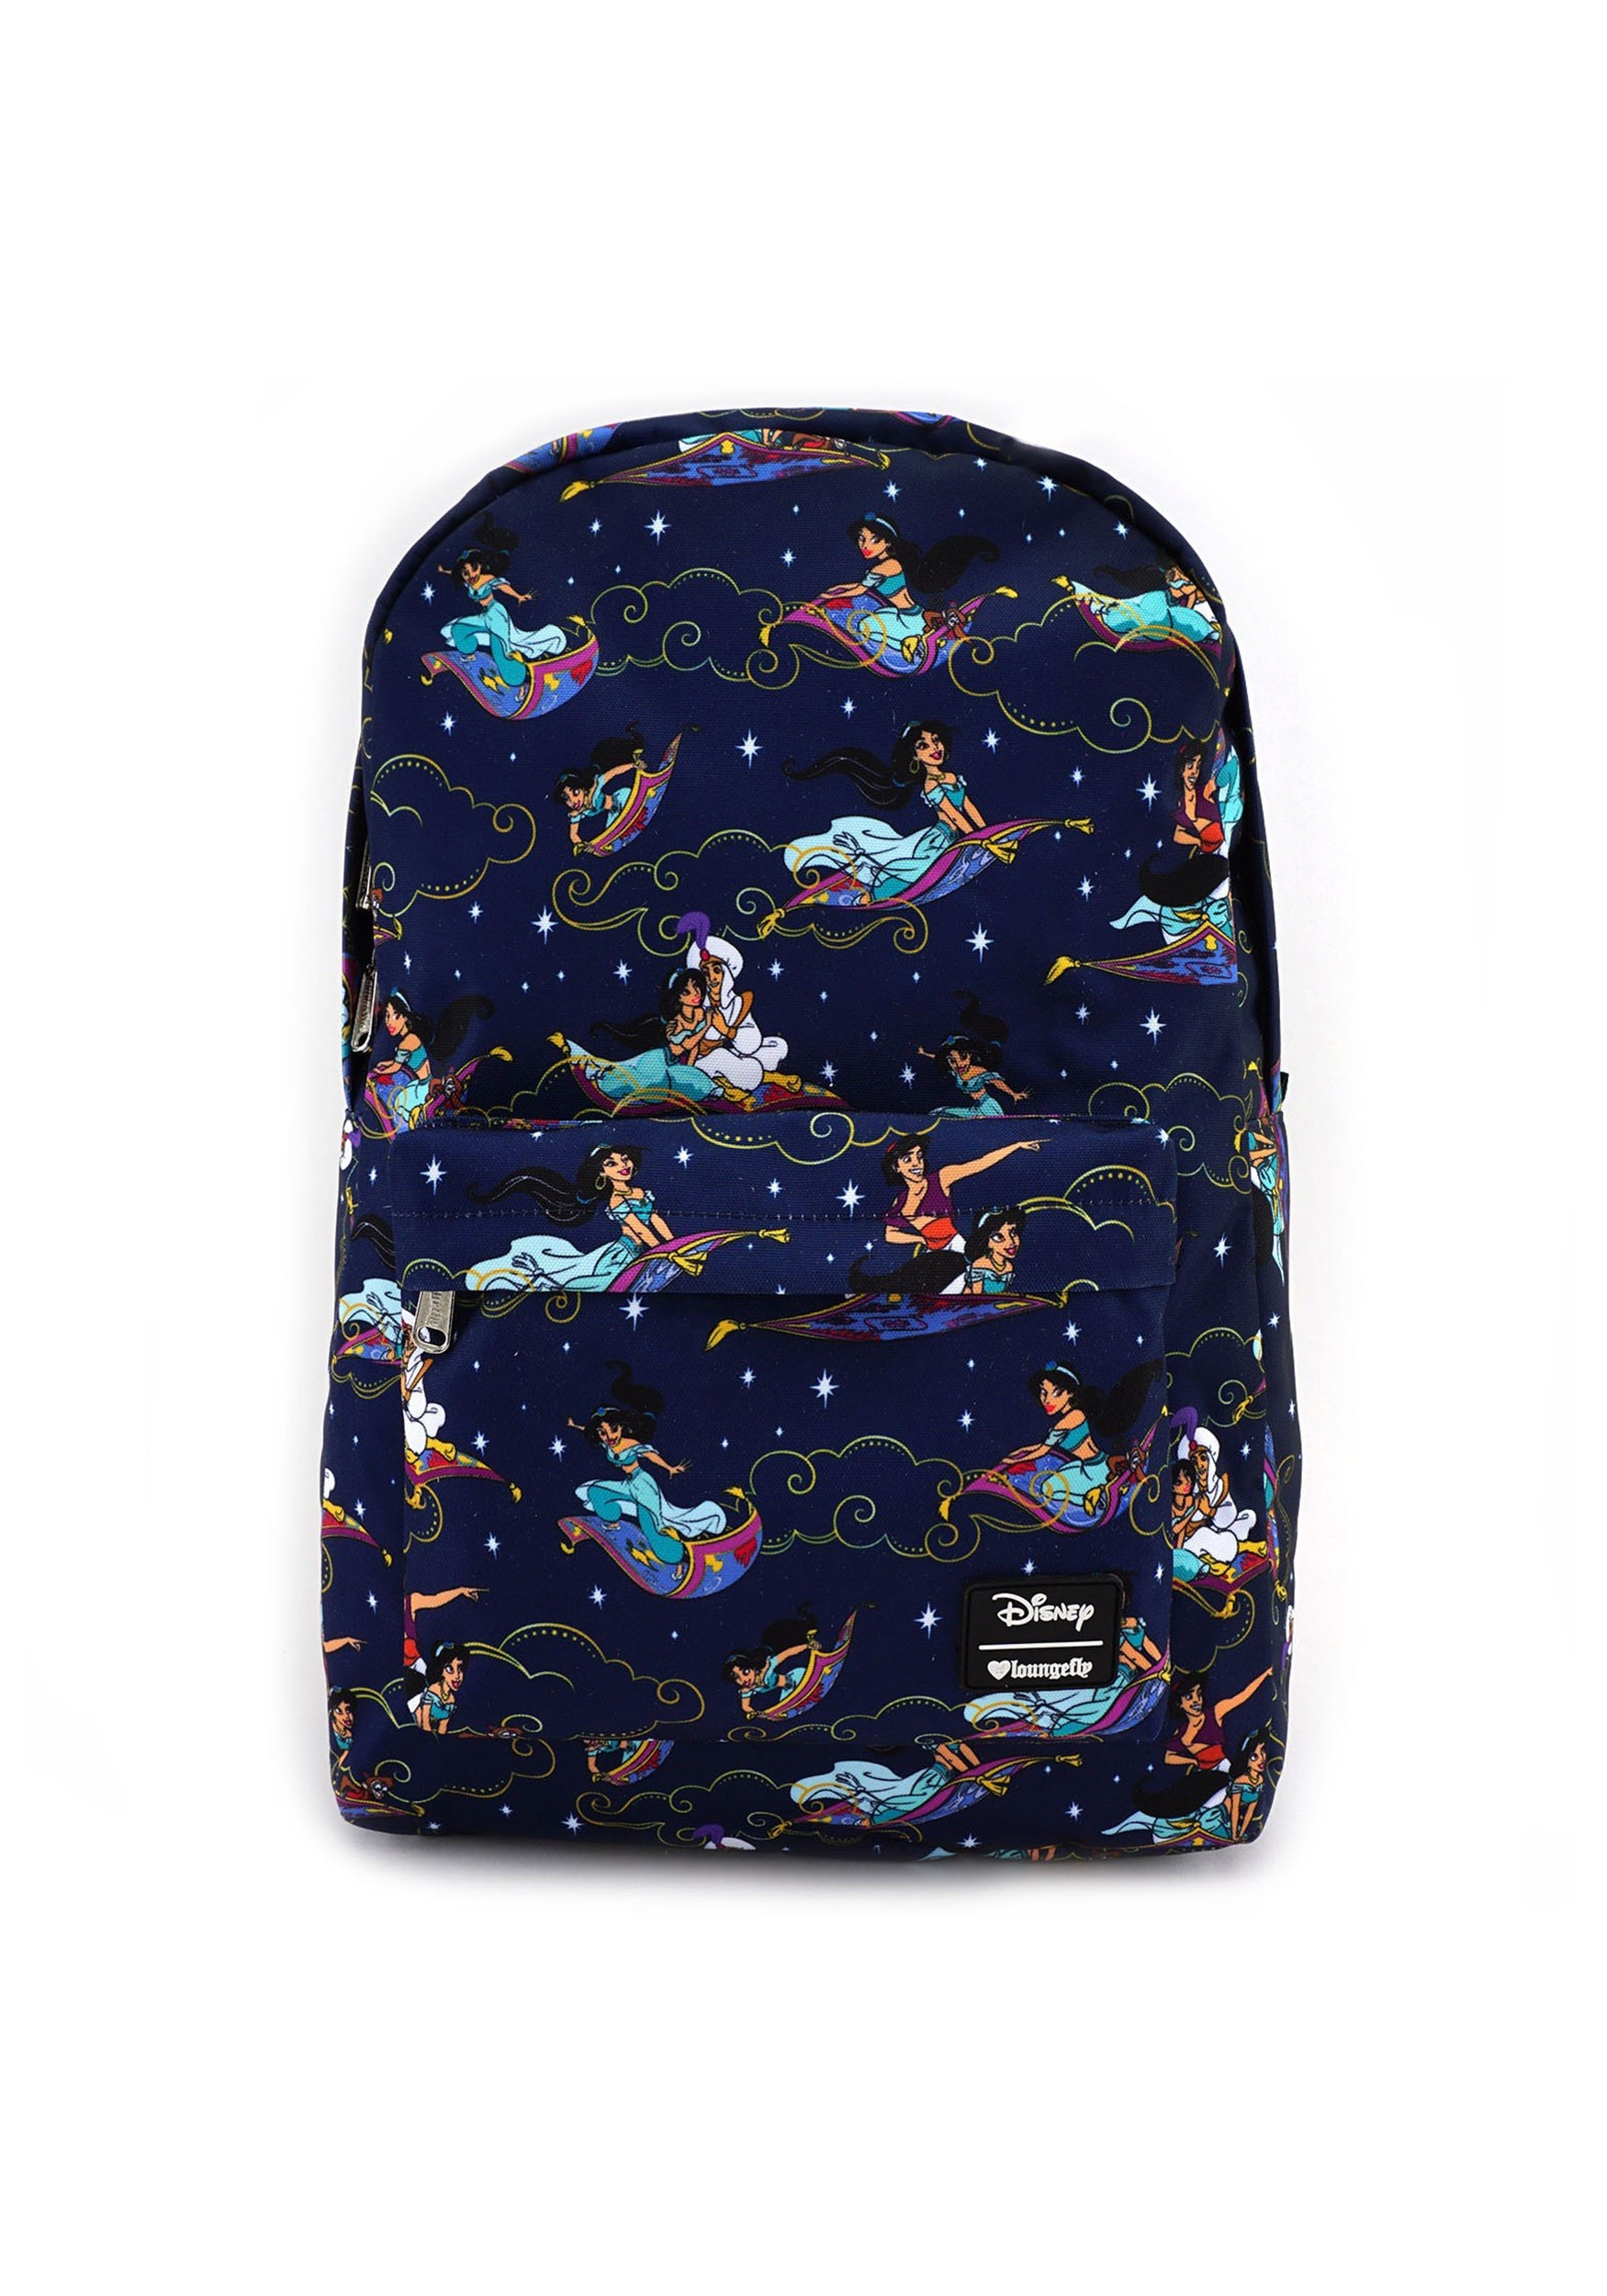 689bb11ed34 Aladdin Magic Carpet Ride Print Backpack by Loungefly